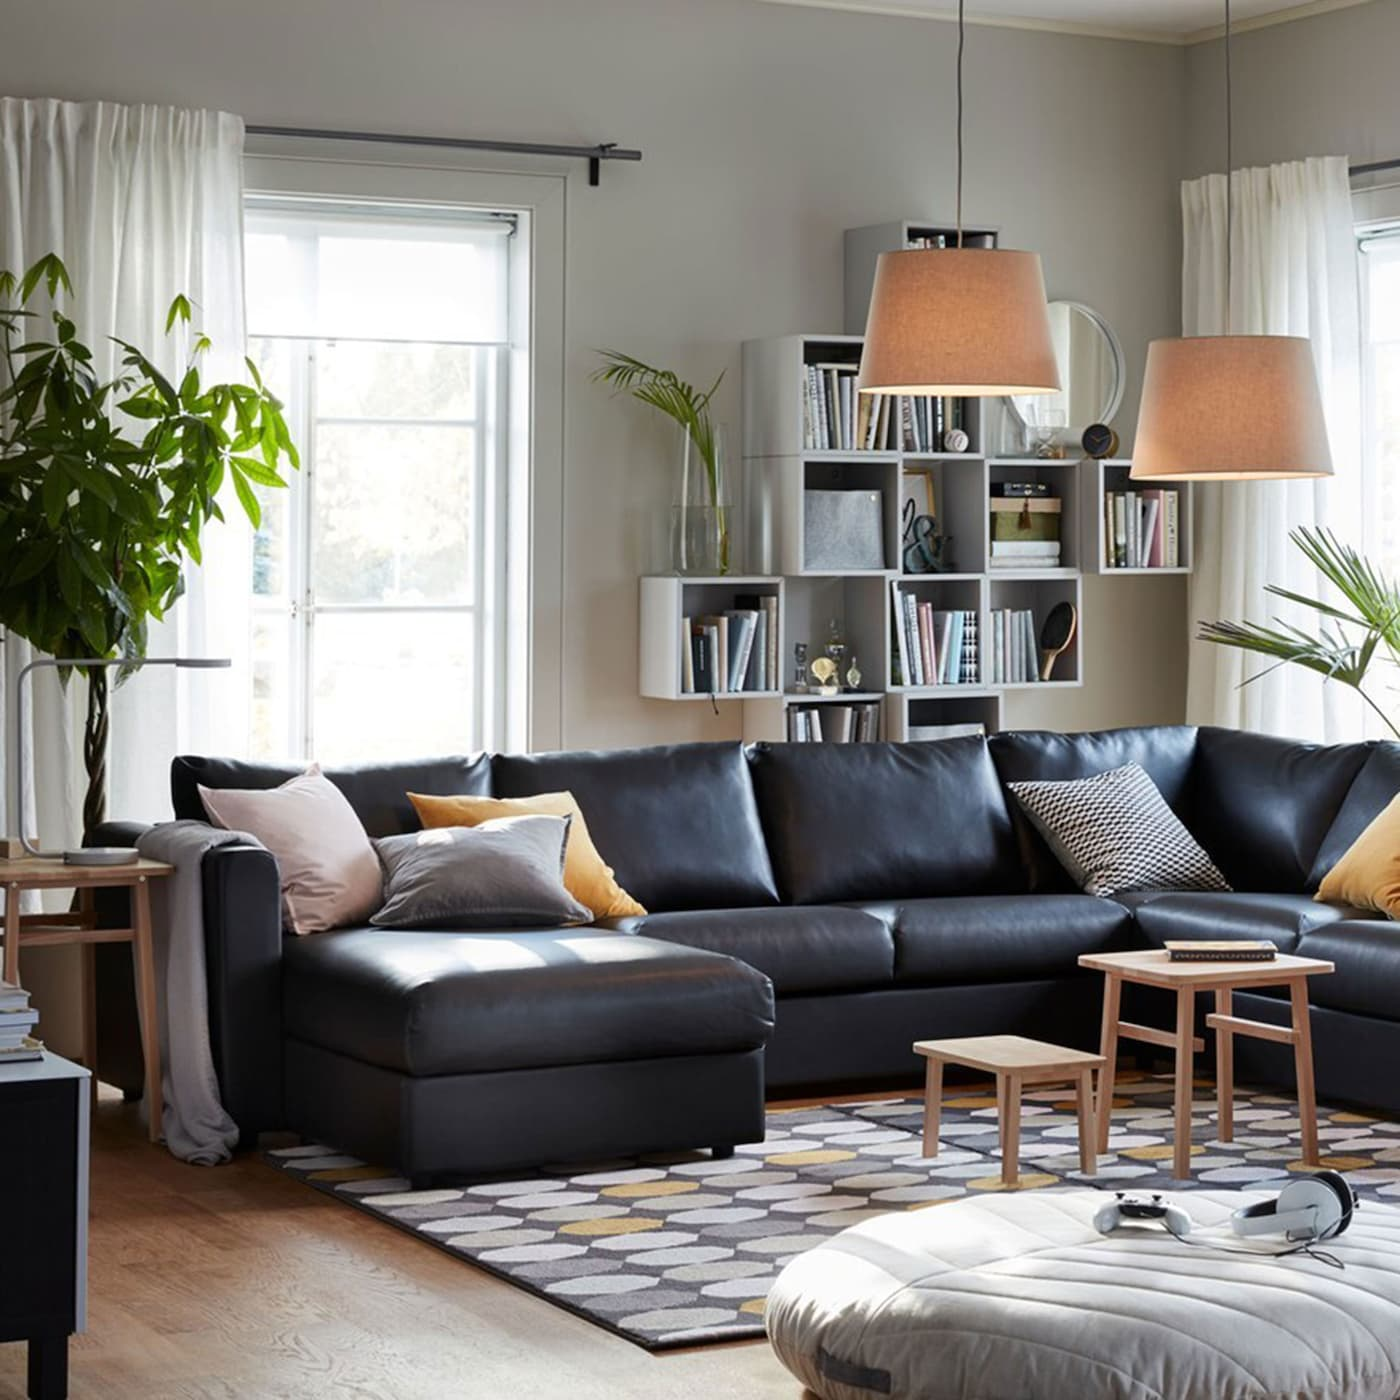 12 Picturesque Small Living Room Design: Living Room Inspiration For Big Families